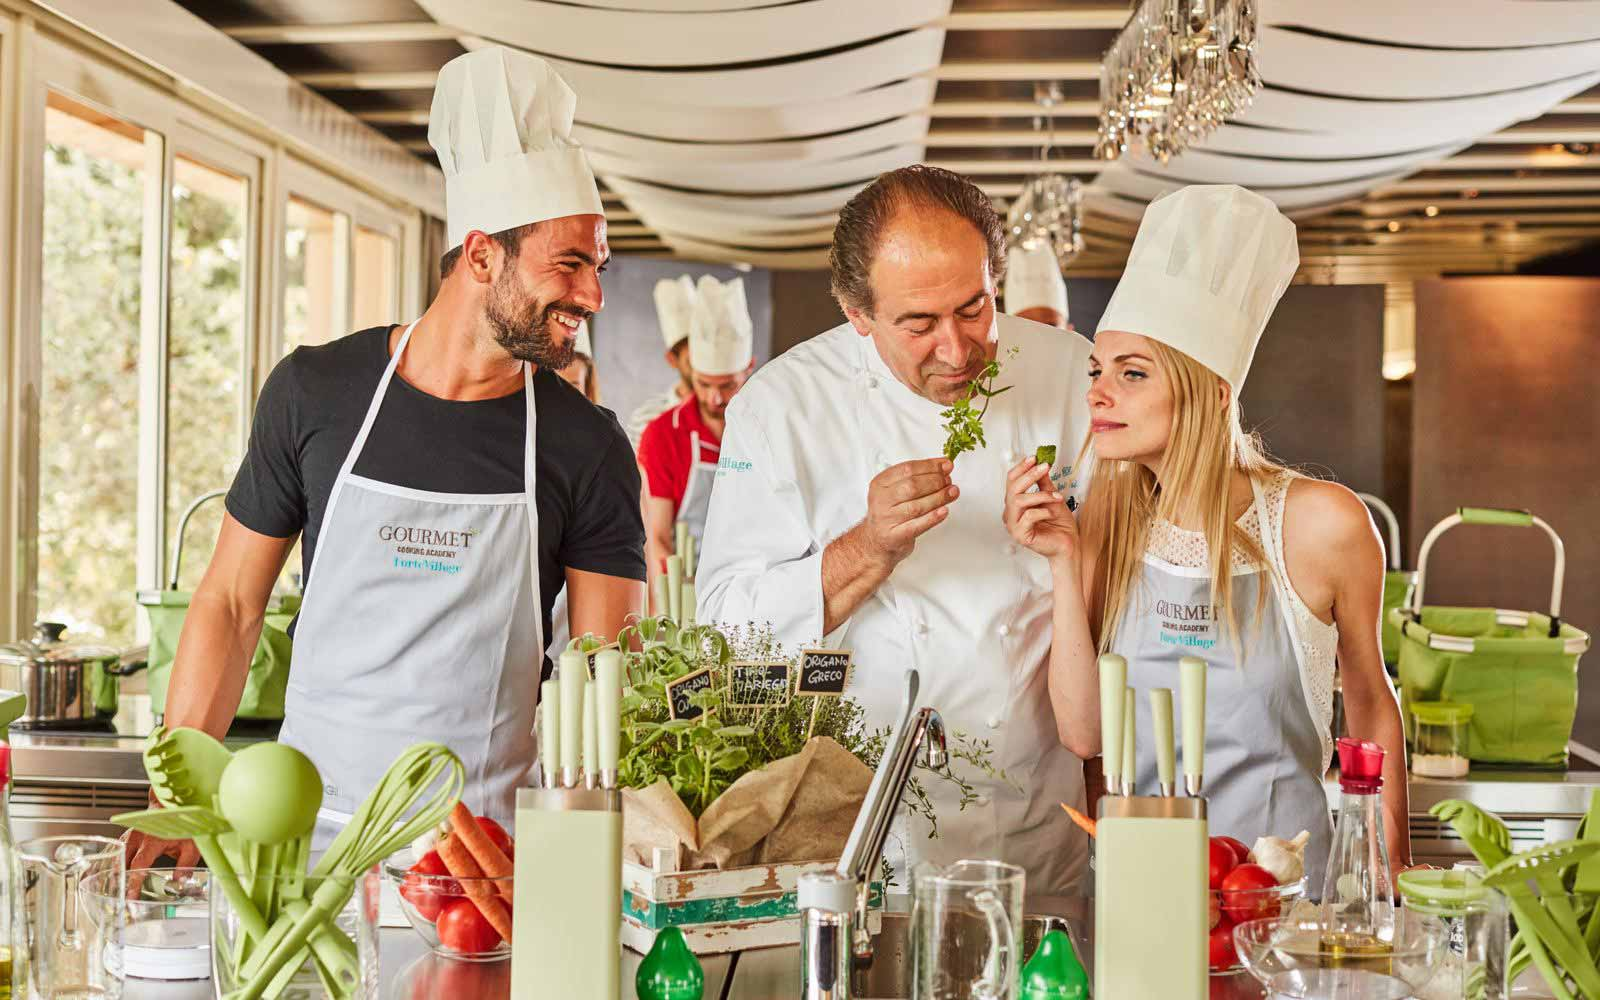 Cooking Academy at the Forte Village Resort